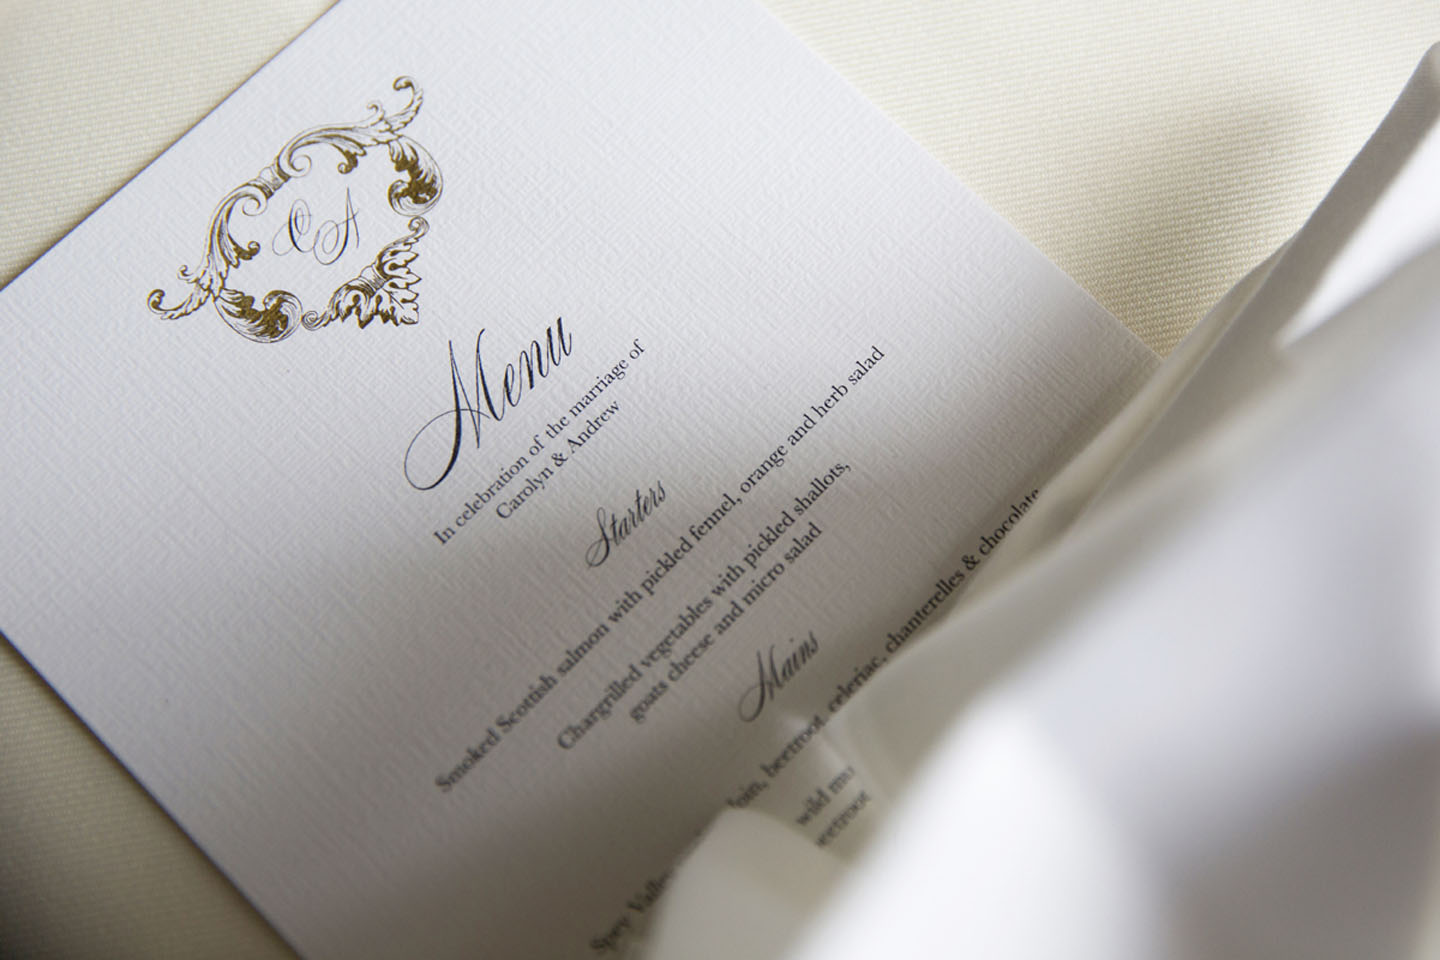 Elegant Wedding Menu Cards - Beaumont | Real Wedding Stories | Edinburgh Wedding Inspiration from Carolyn and Andrew | The Foil Invite Company Blog